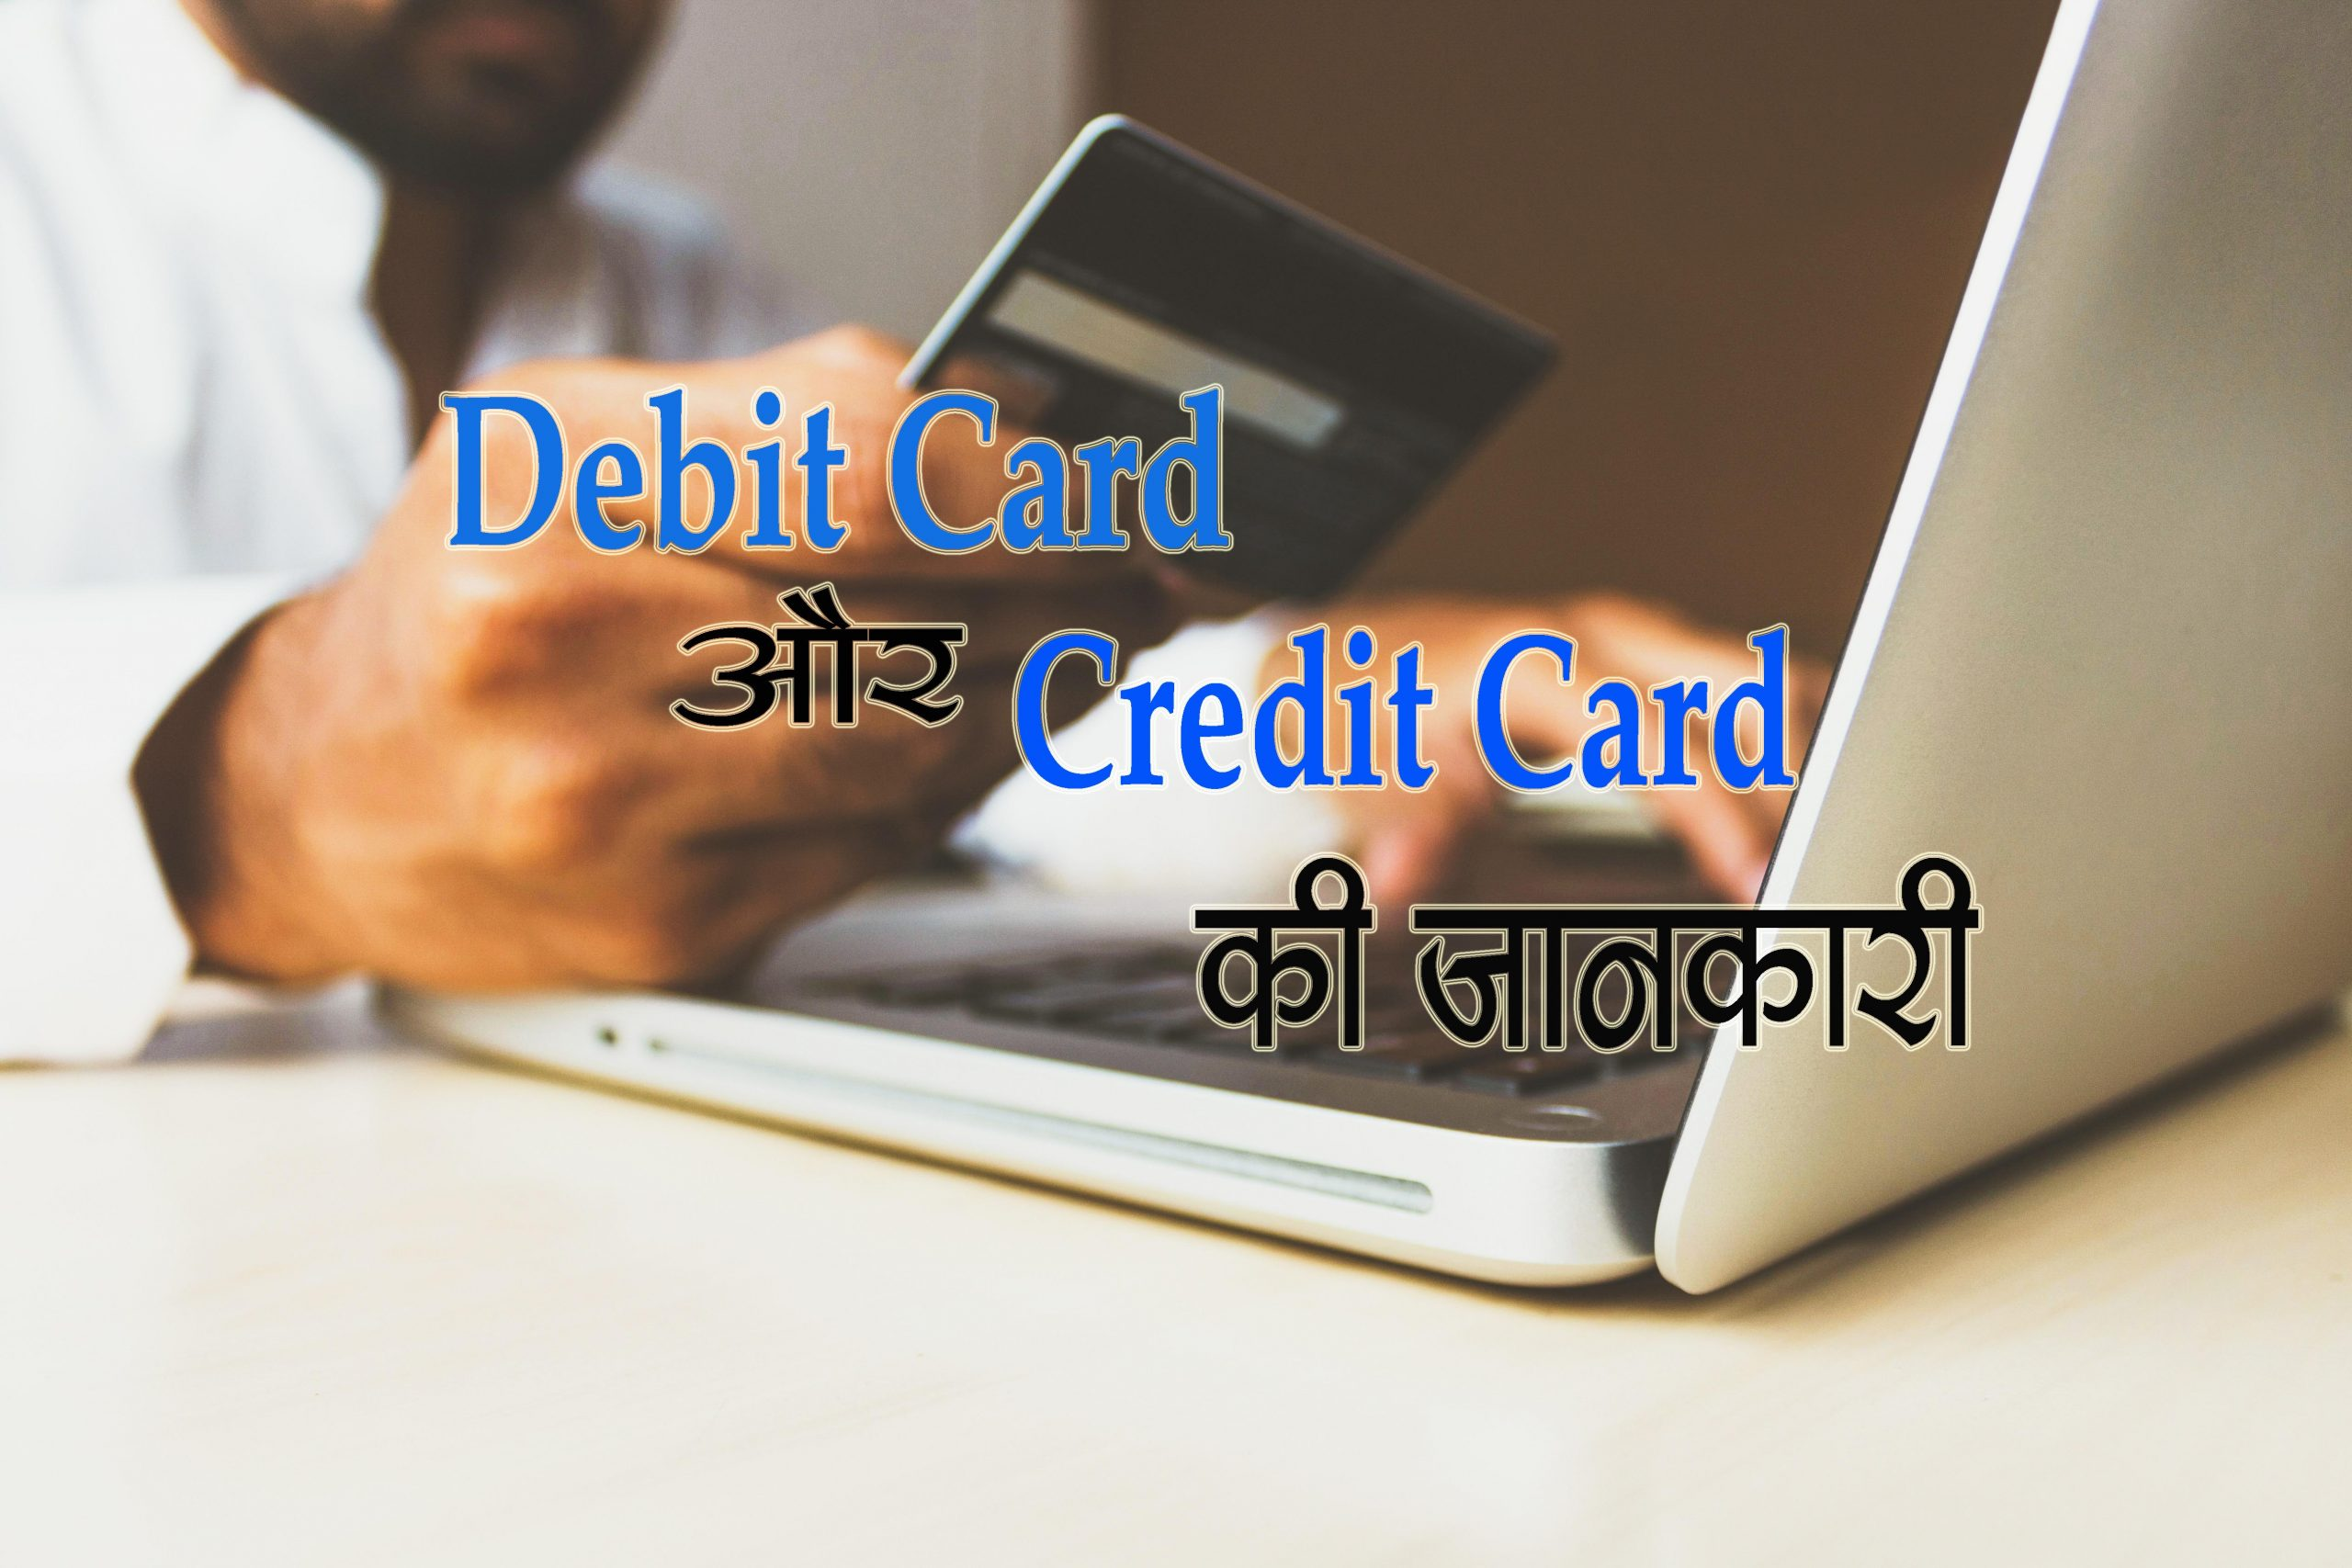 What is Debit Card in Hindi